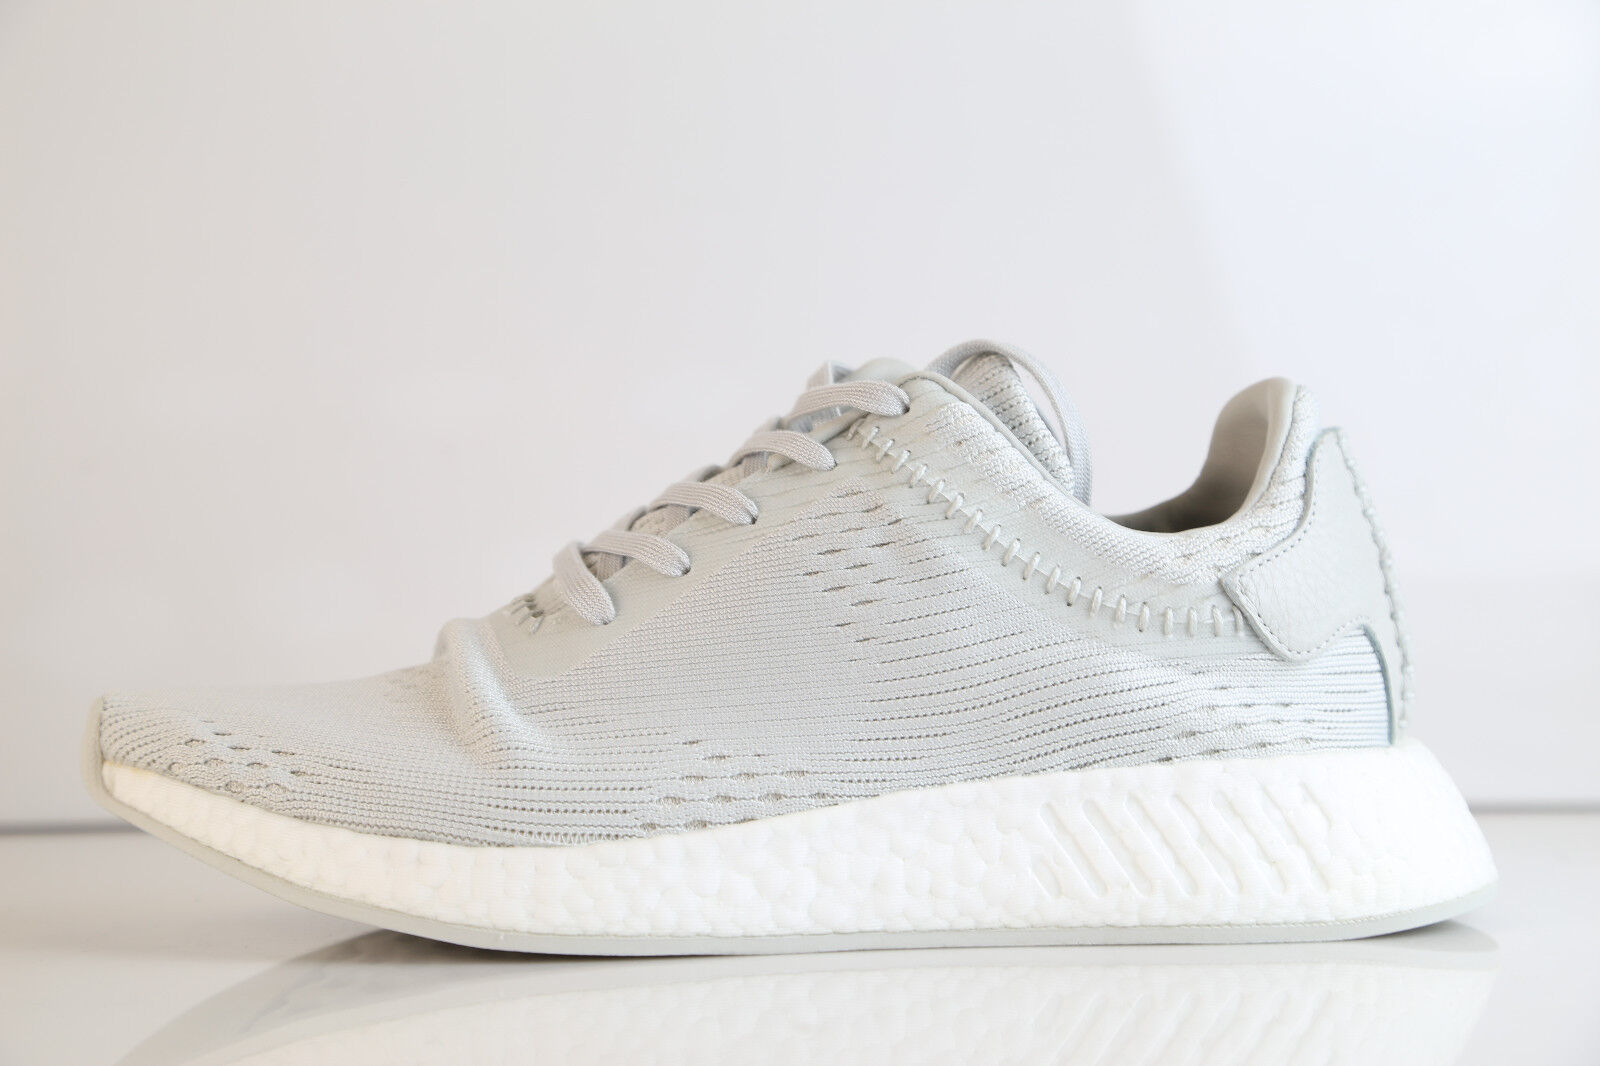 Adidas X Wings + Horns NMD R2 PK Hint knit Tan BB3118 5-13.5 prime knit Hint rf wang egg ec5a80